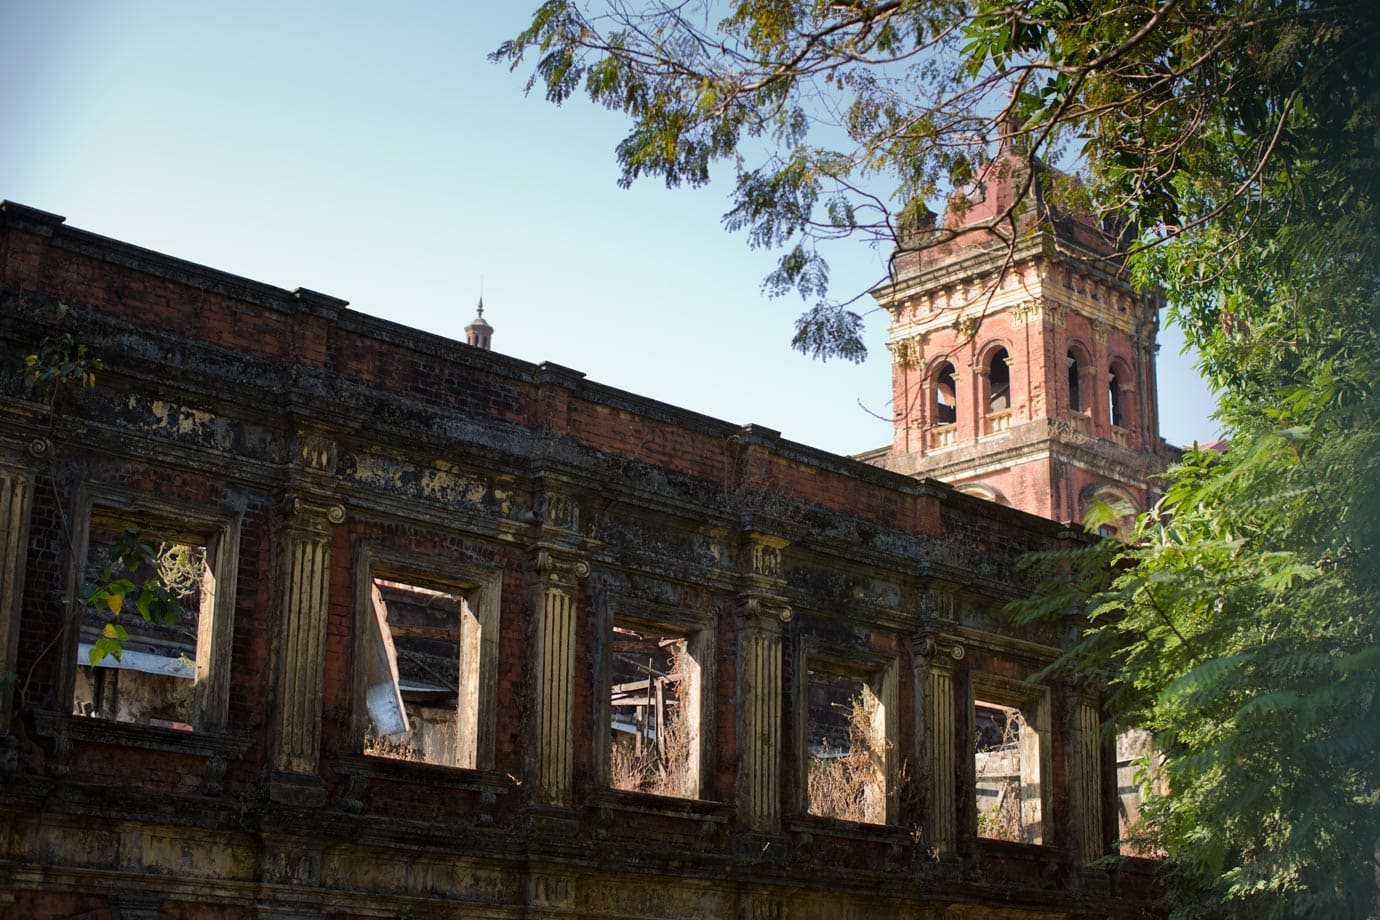 One of the crumbling structures found in Yangon - Brian Ceci